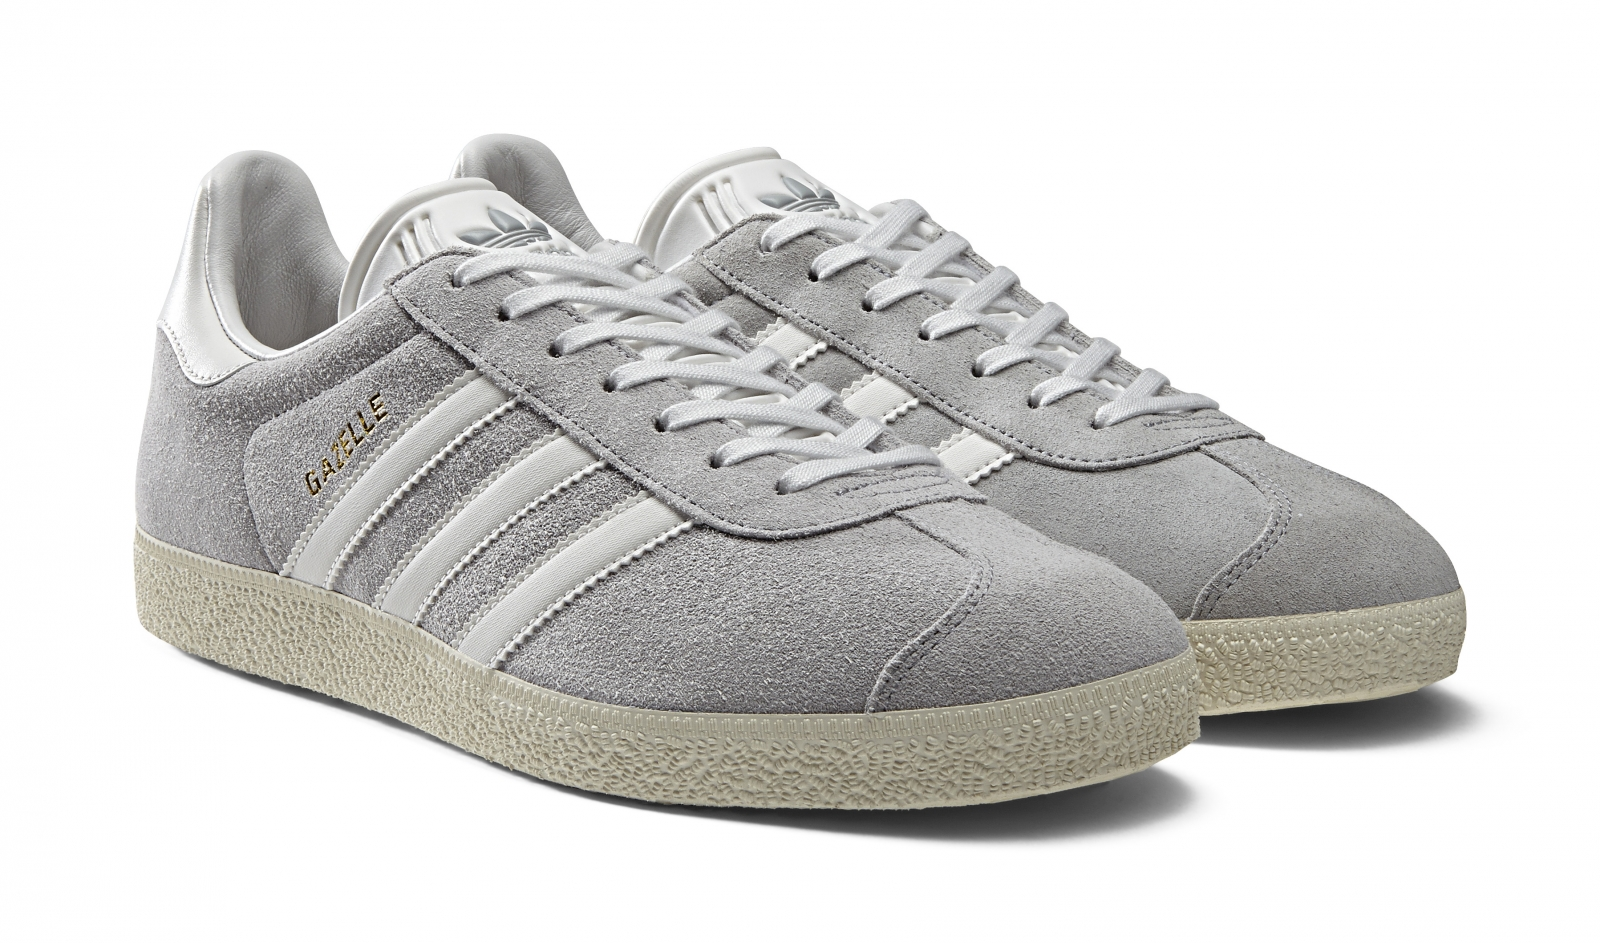 b103534e6d Shoe Gazelle Time In Terrace Adidas For Relaunch Classic Revived PdwxBdIqg